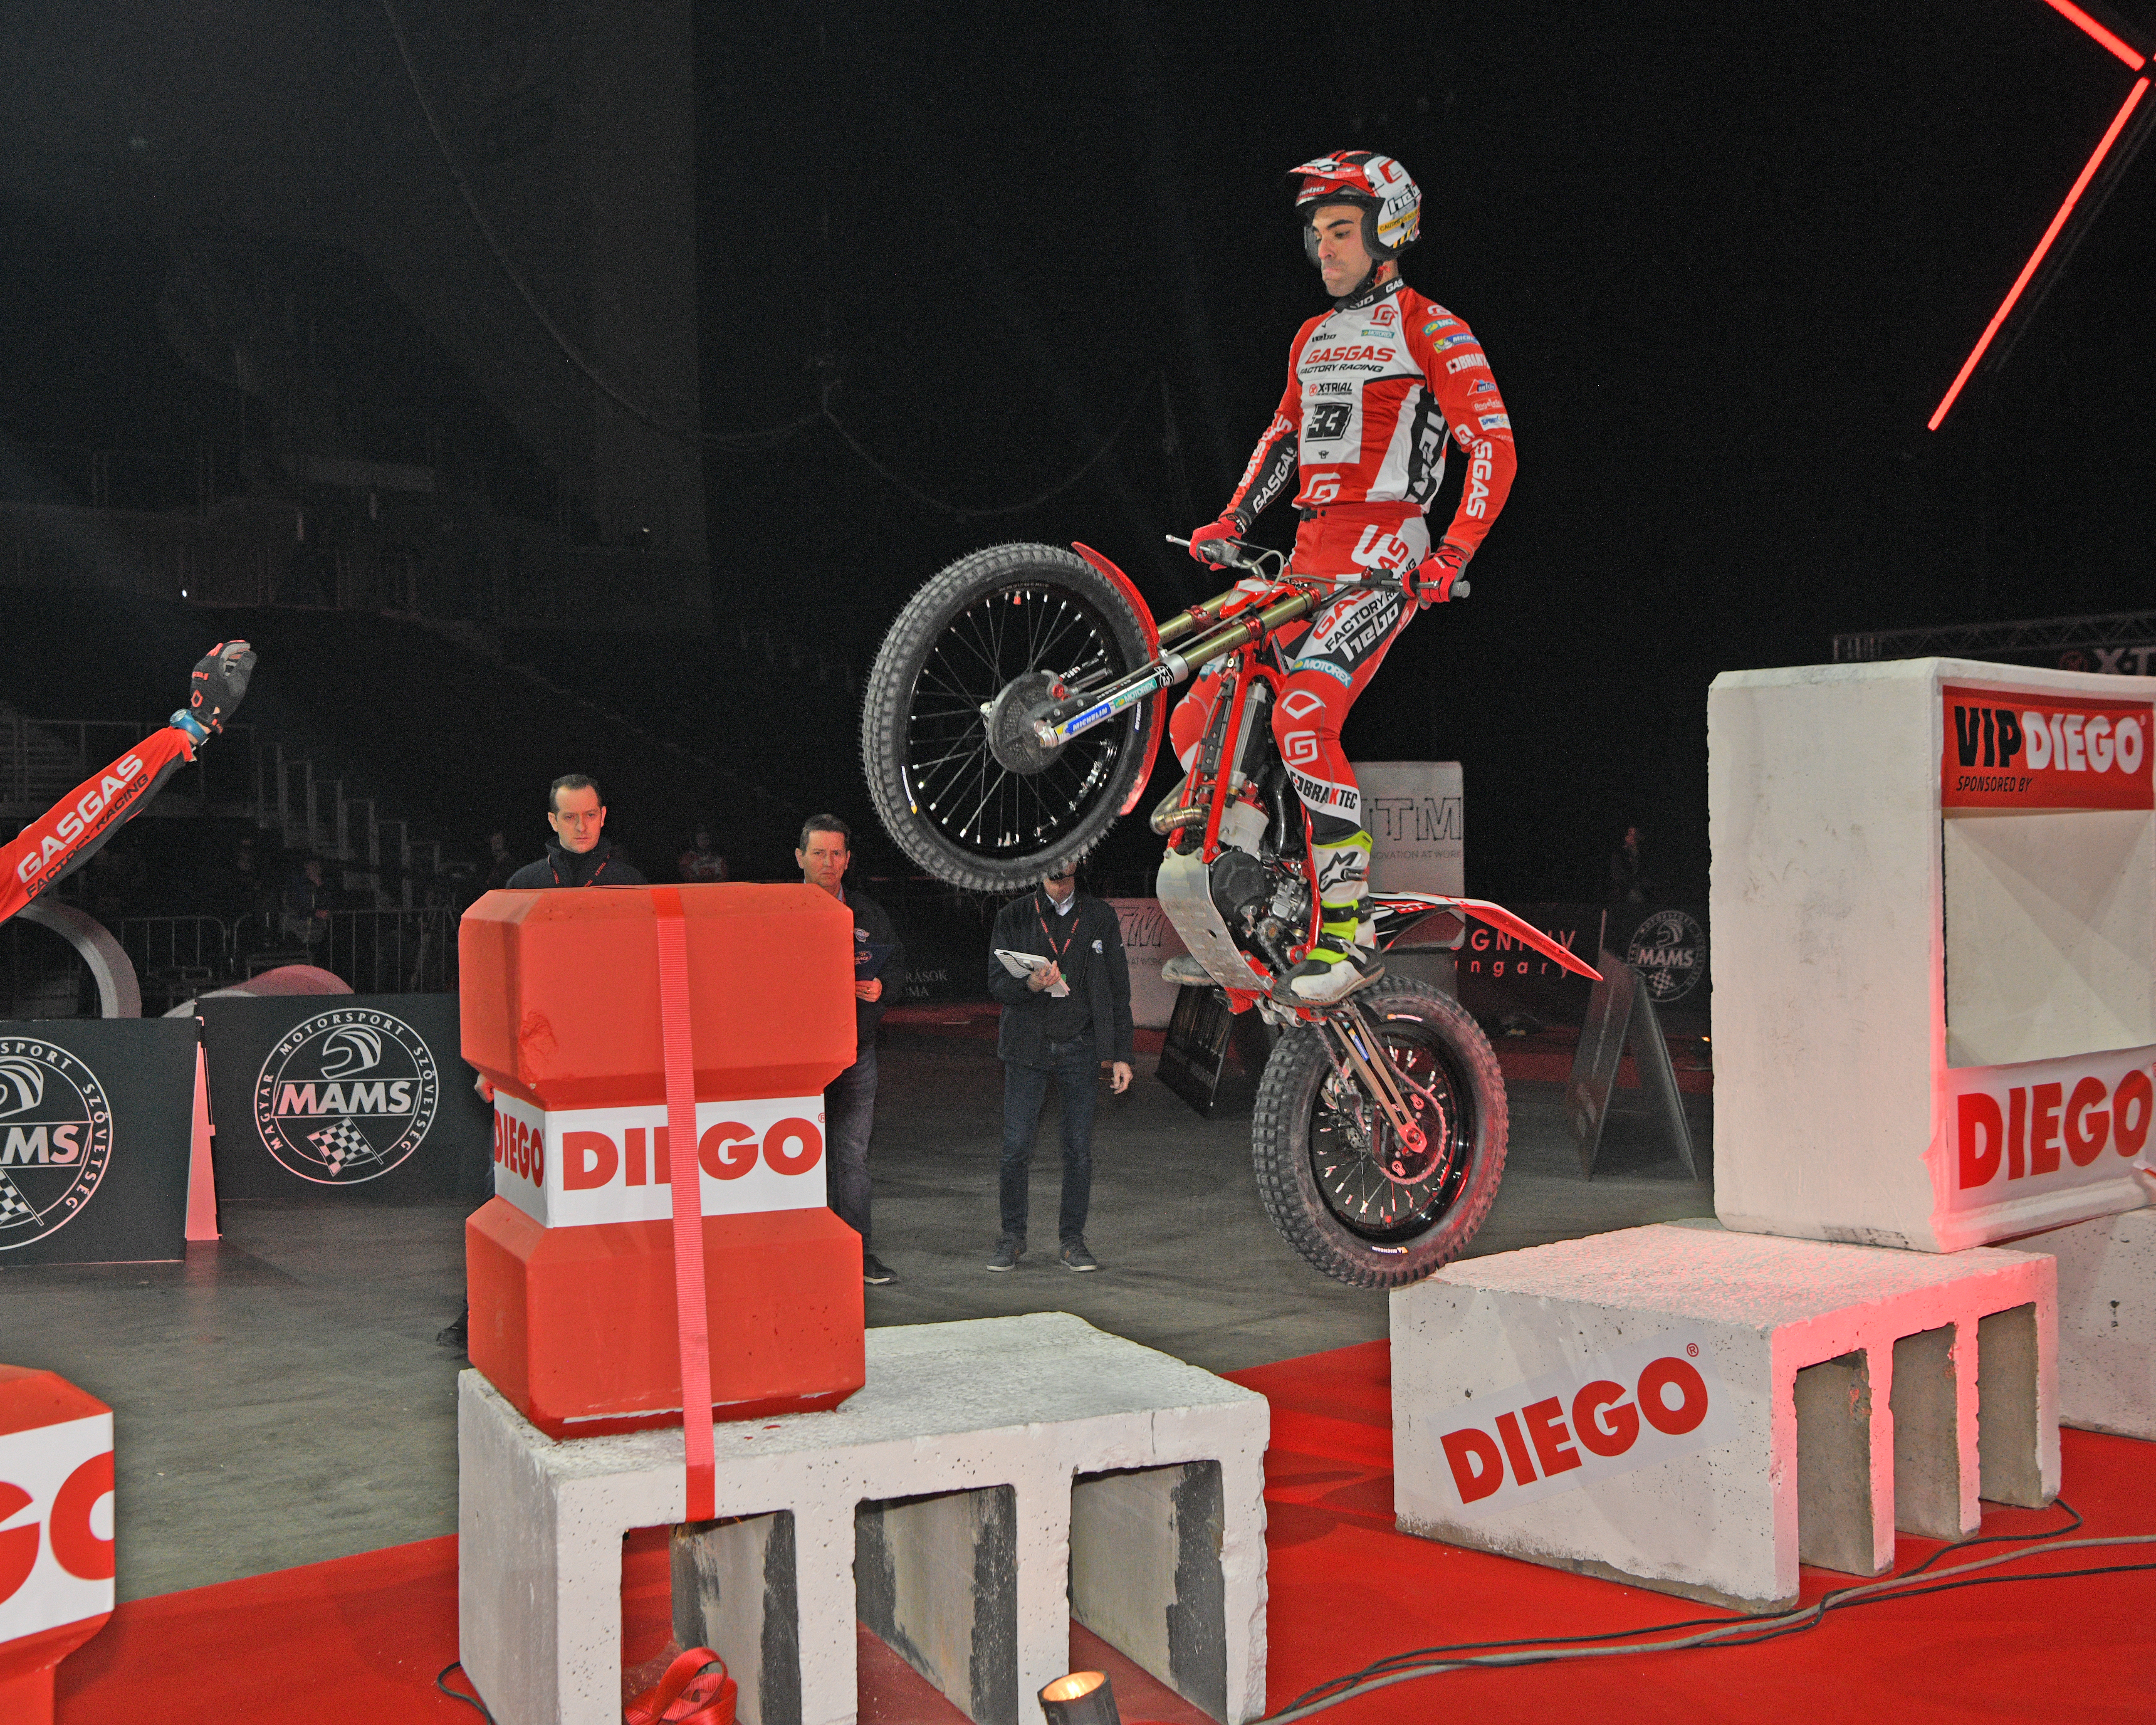 Jorge Casales secures fifth place overall in X-Trial Budapest